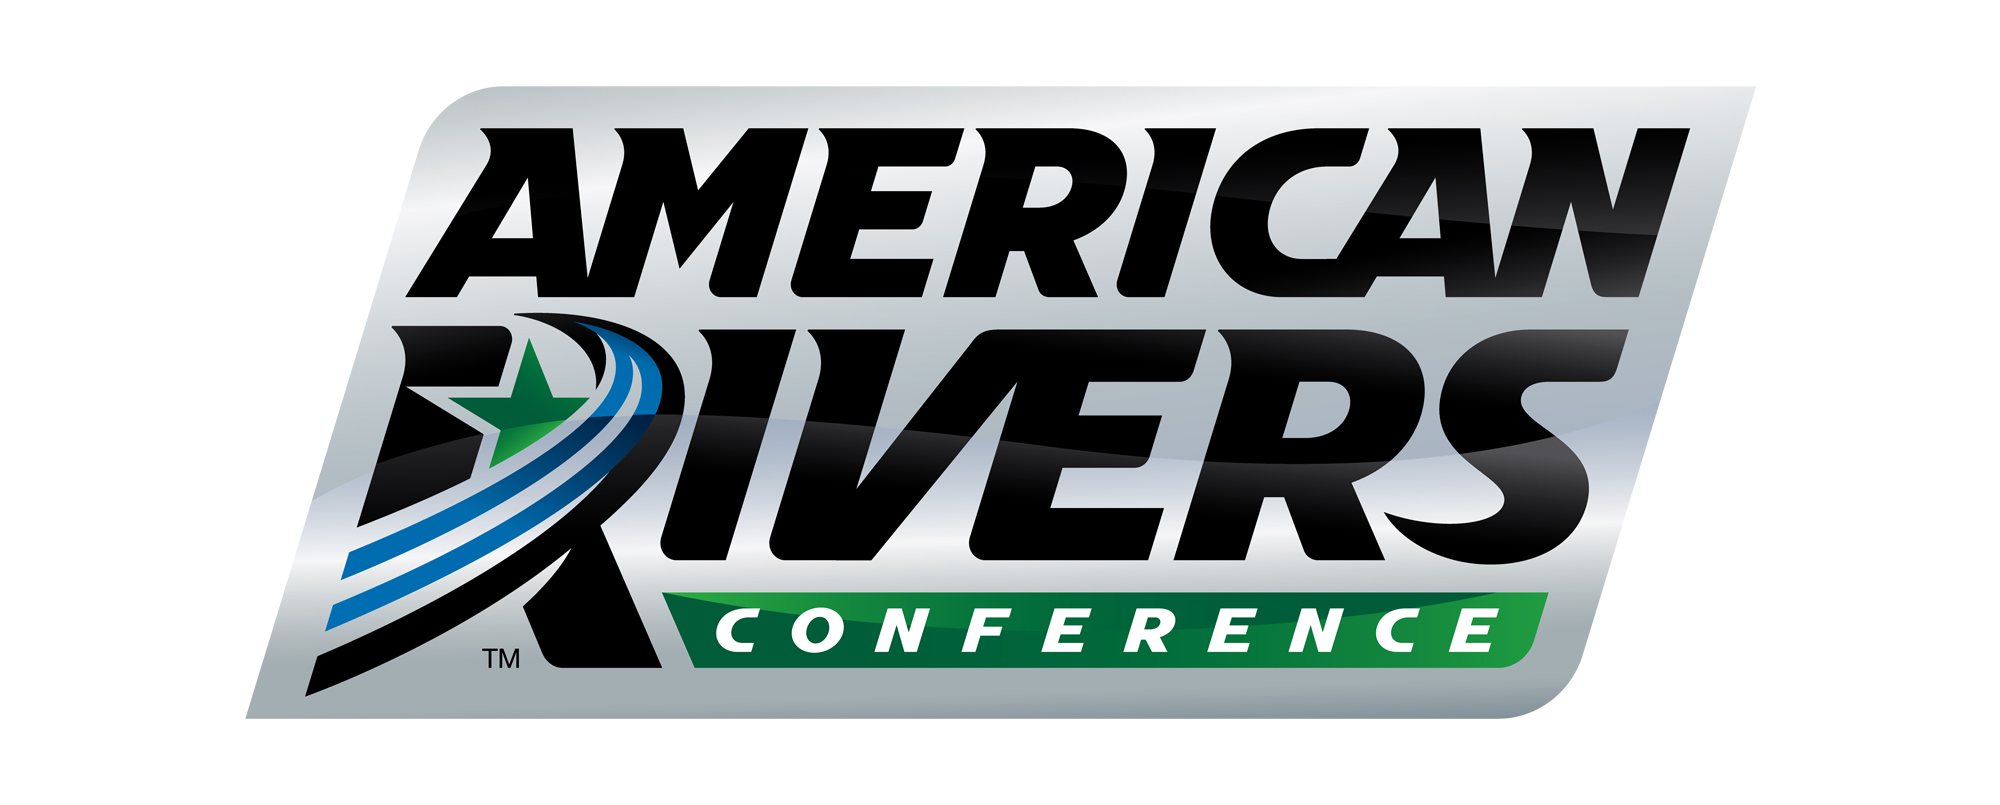 #RiversRise; Iowa Conference now American Rivers Conference